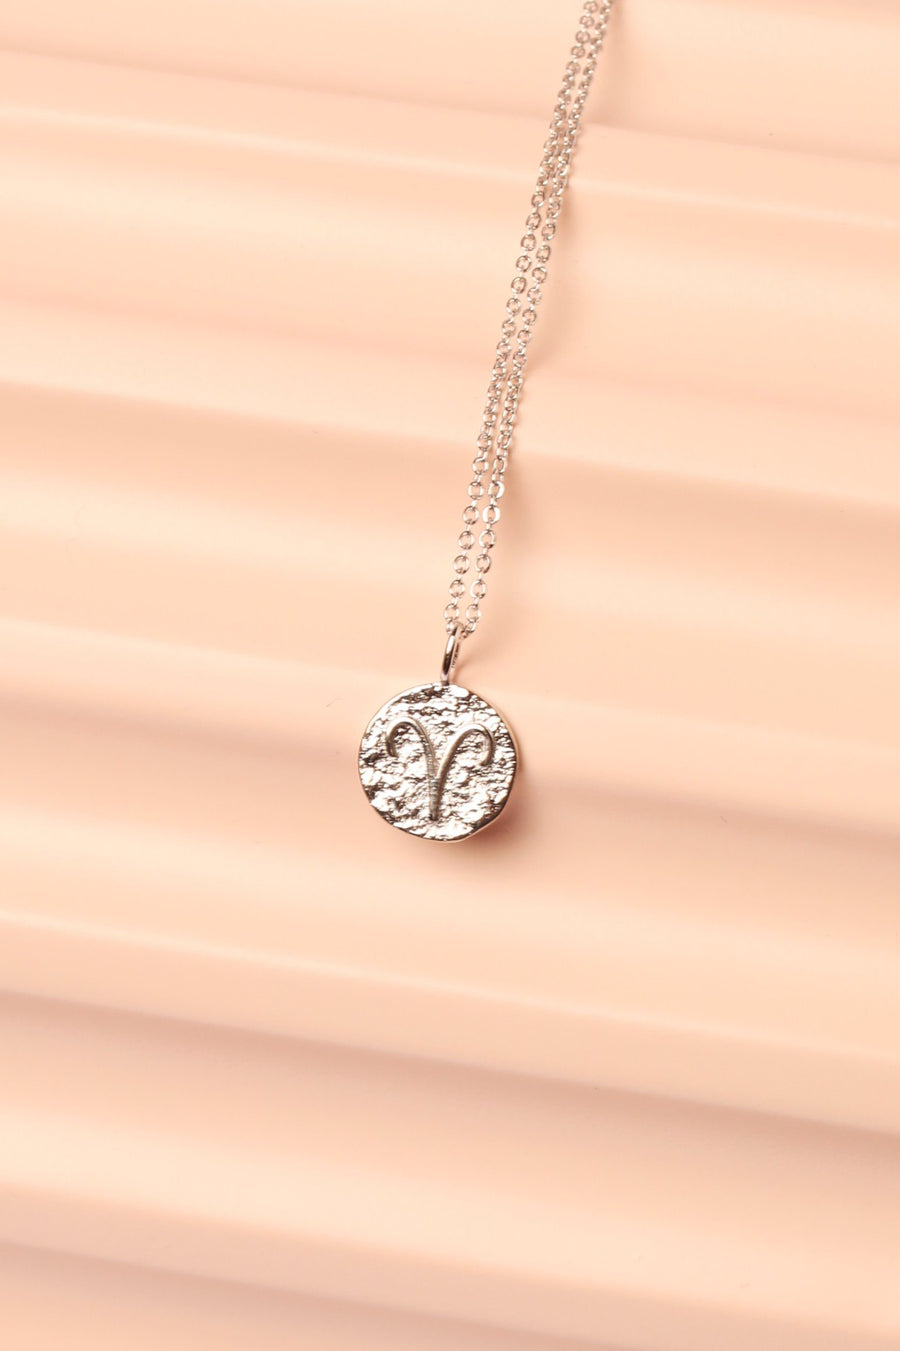 Silver Zodiac Charm Necklace Necklace Mulberry & Grand Aries